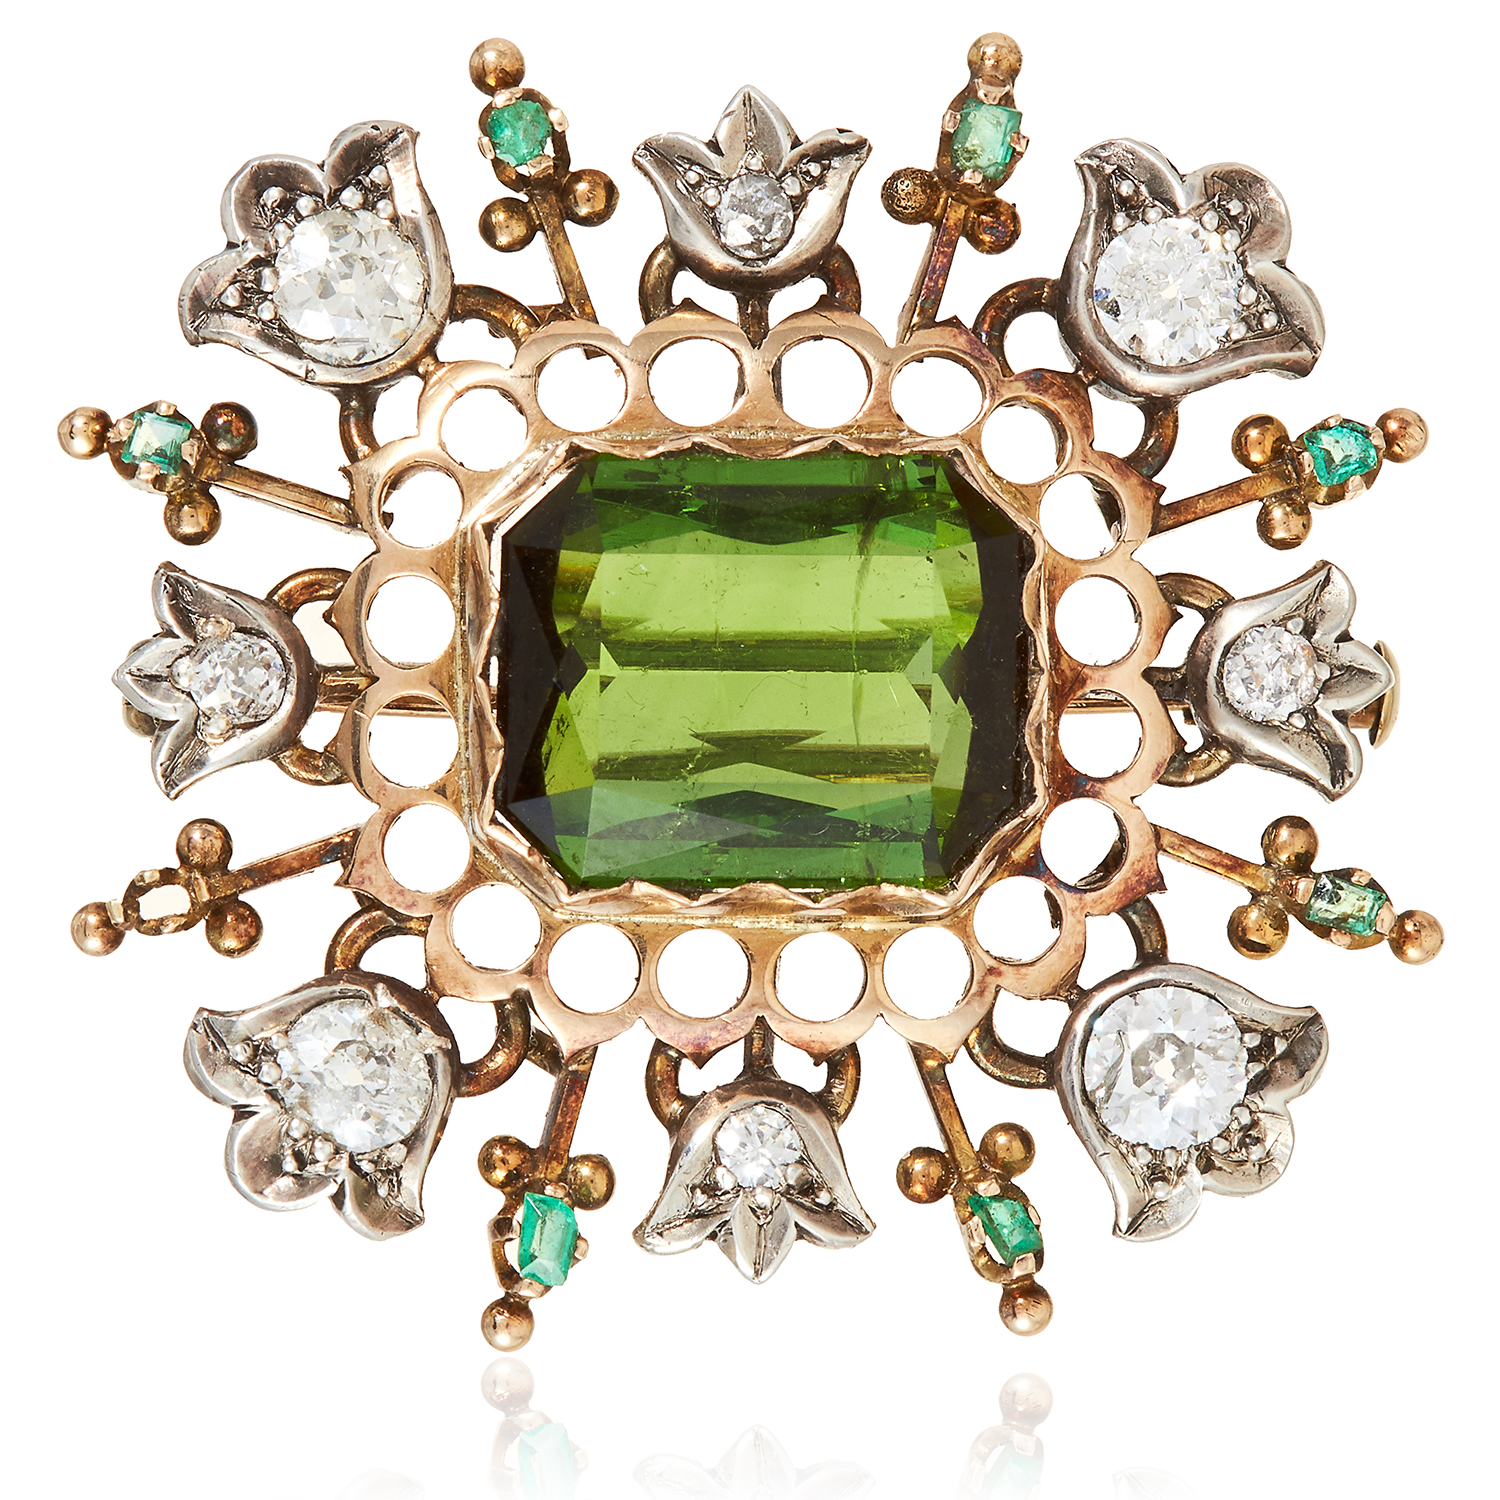 Los 41 - AN ANTIQUE TOURMALINE, EMERALD AND DIAMOND BROOCH, 19TH CENTURY in yellow gold and silver, the